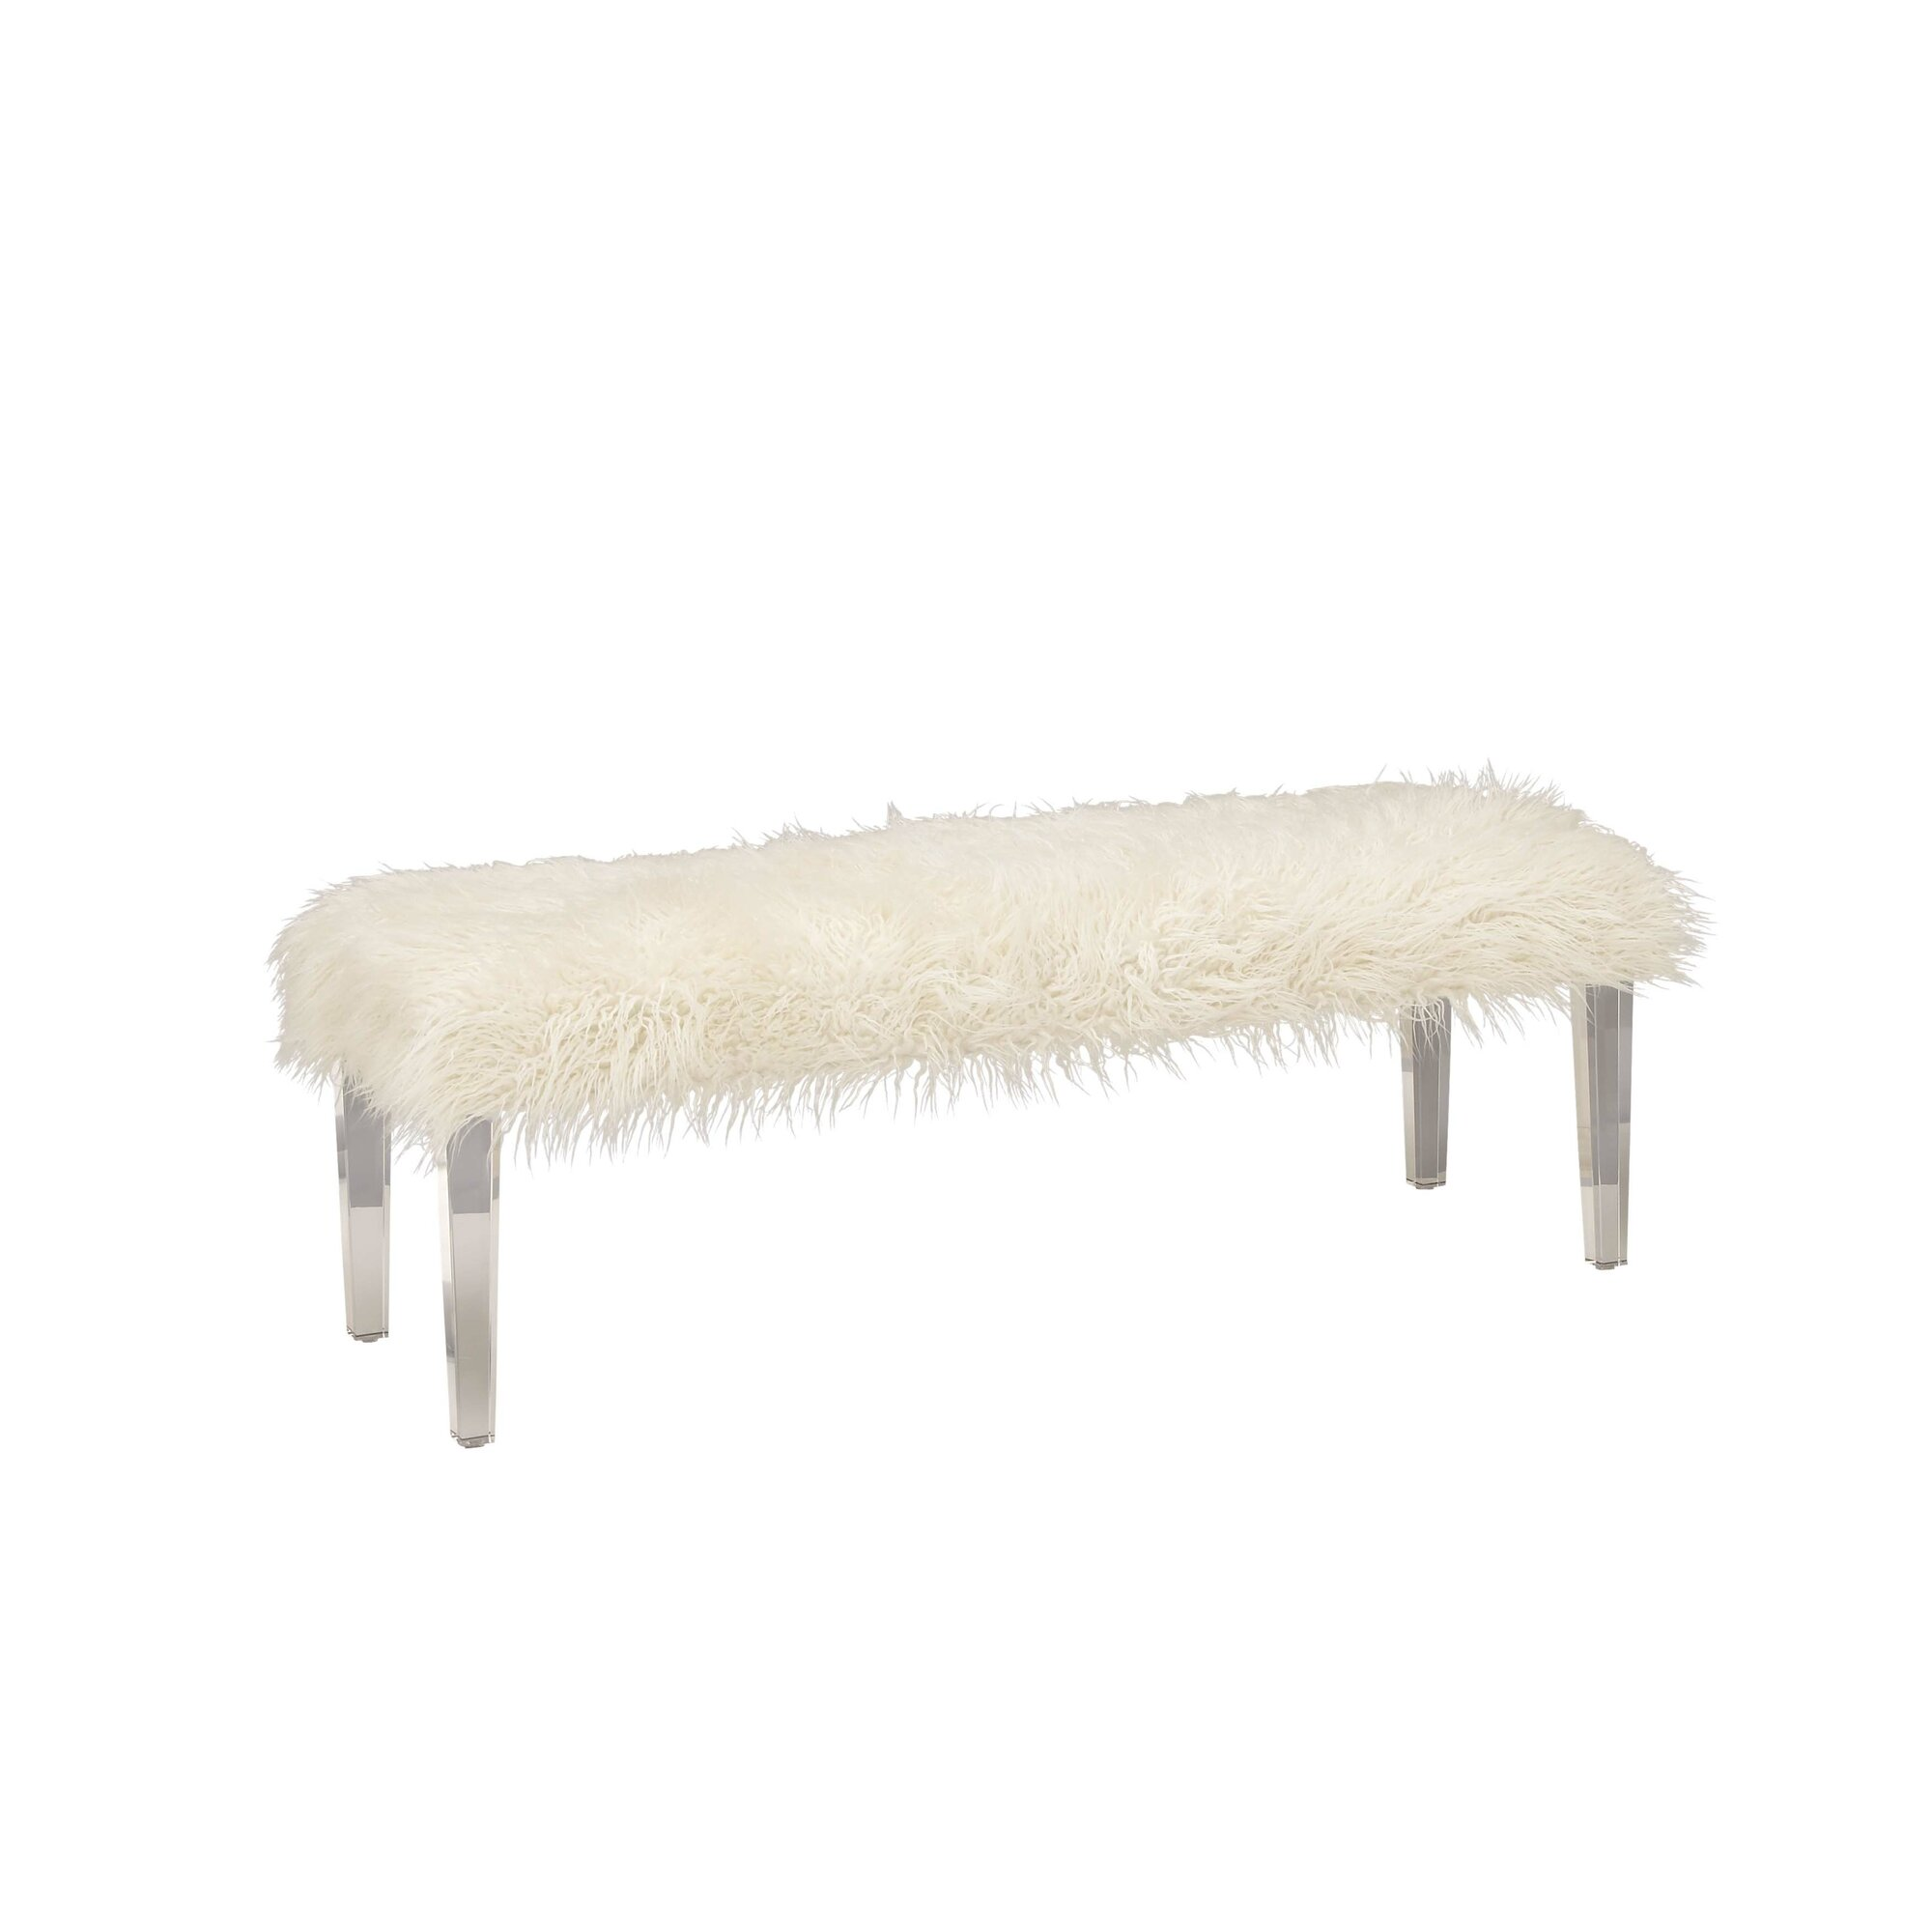 Bedroom bench dimensions - Faux Fur Bedroom Bench